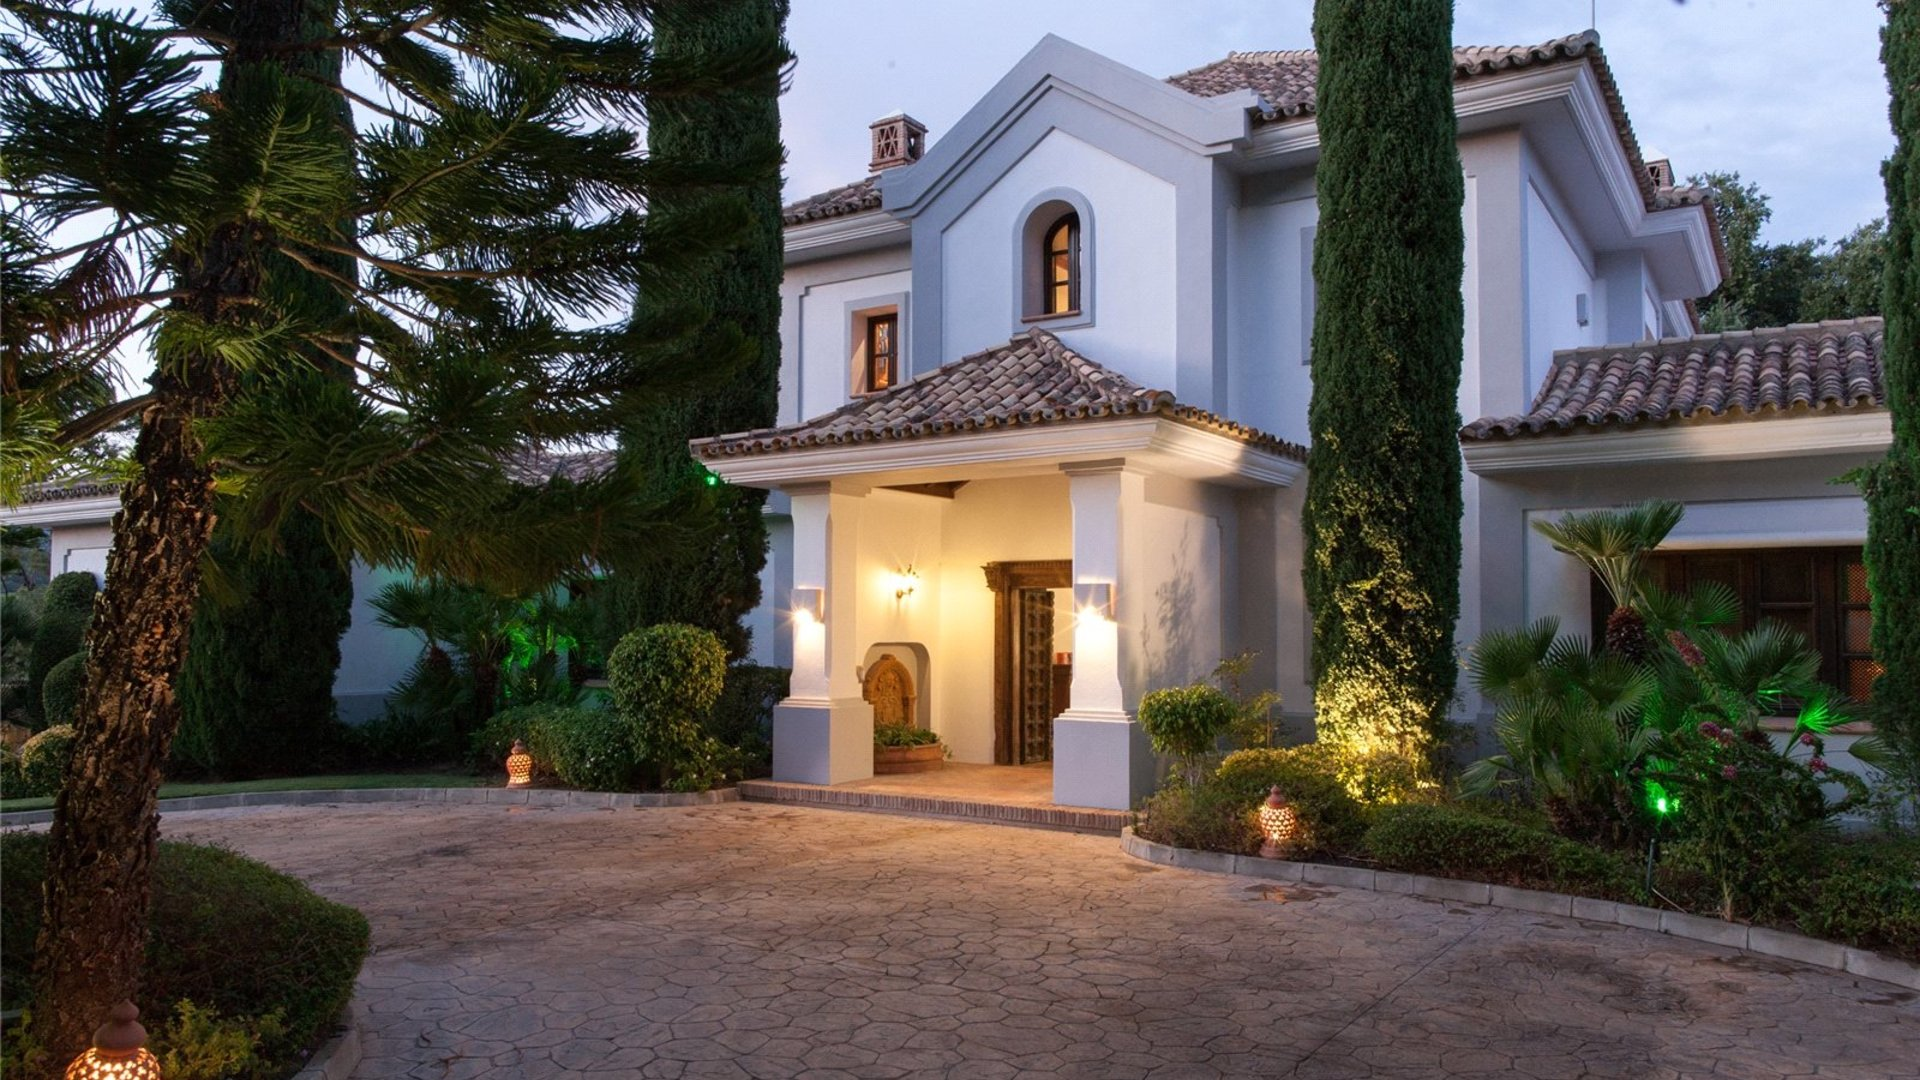 Villa At Night